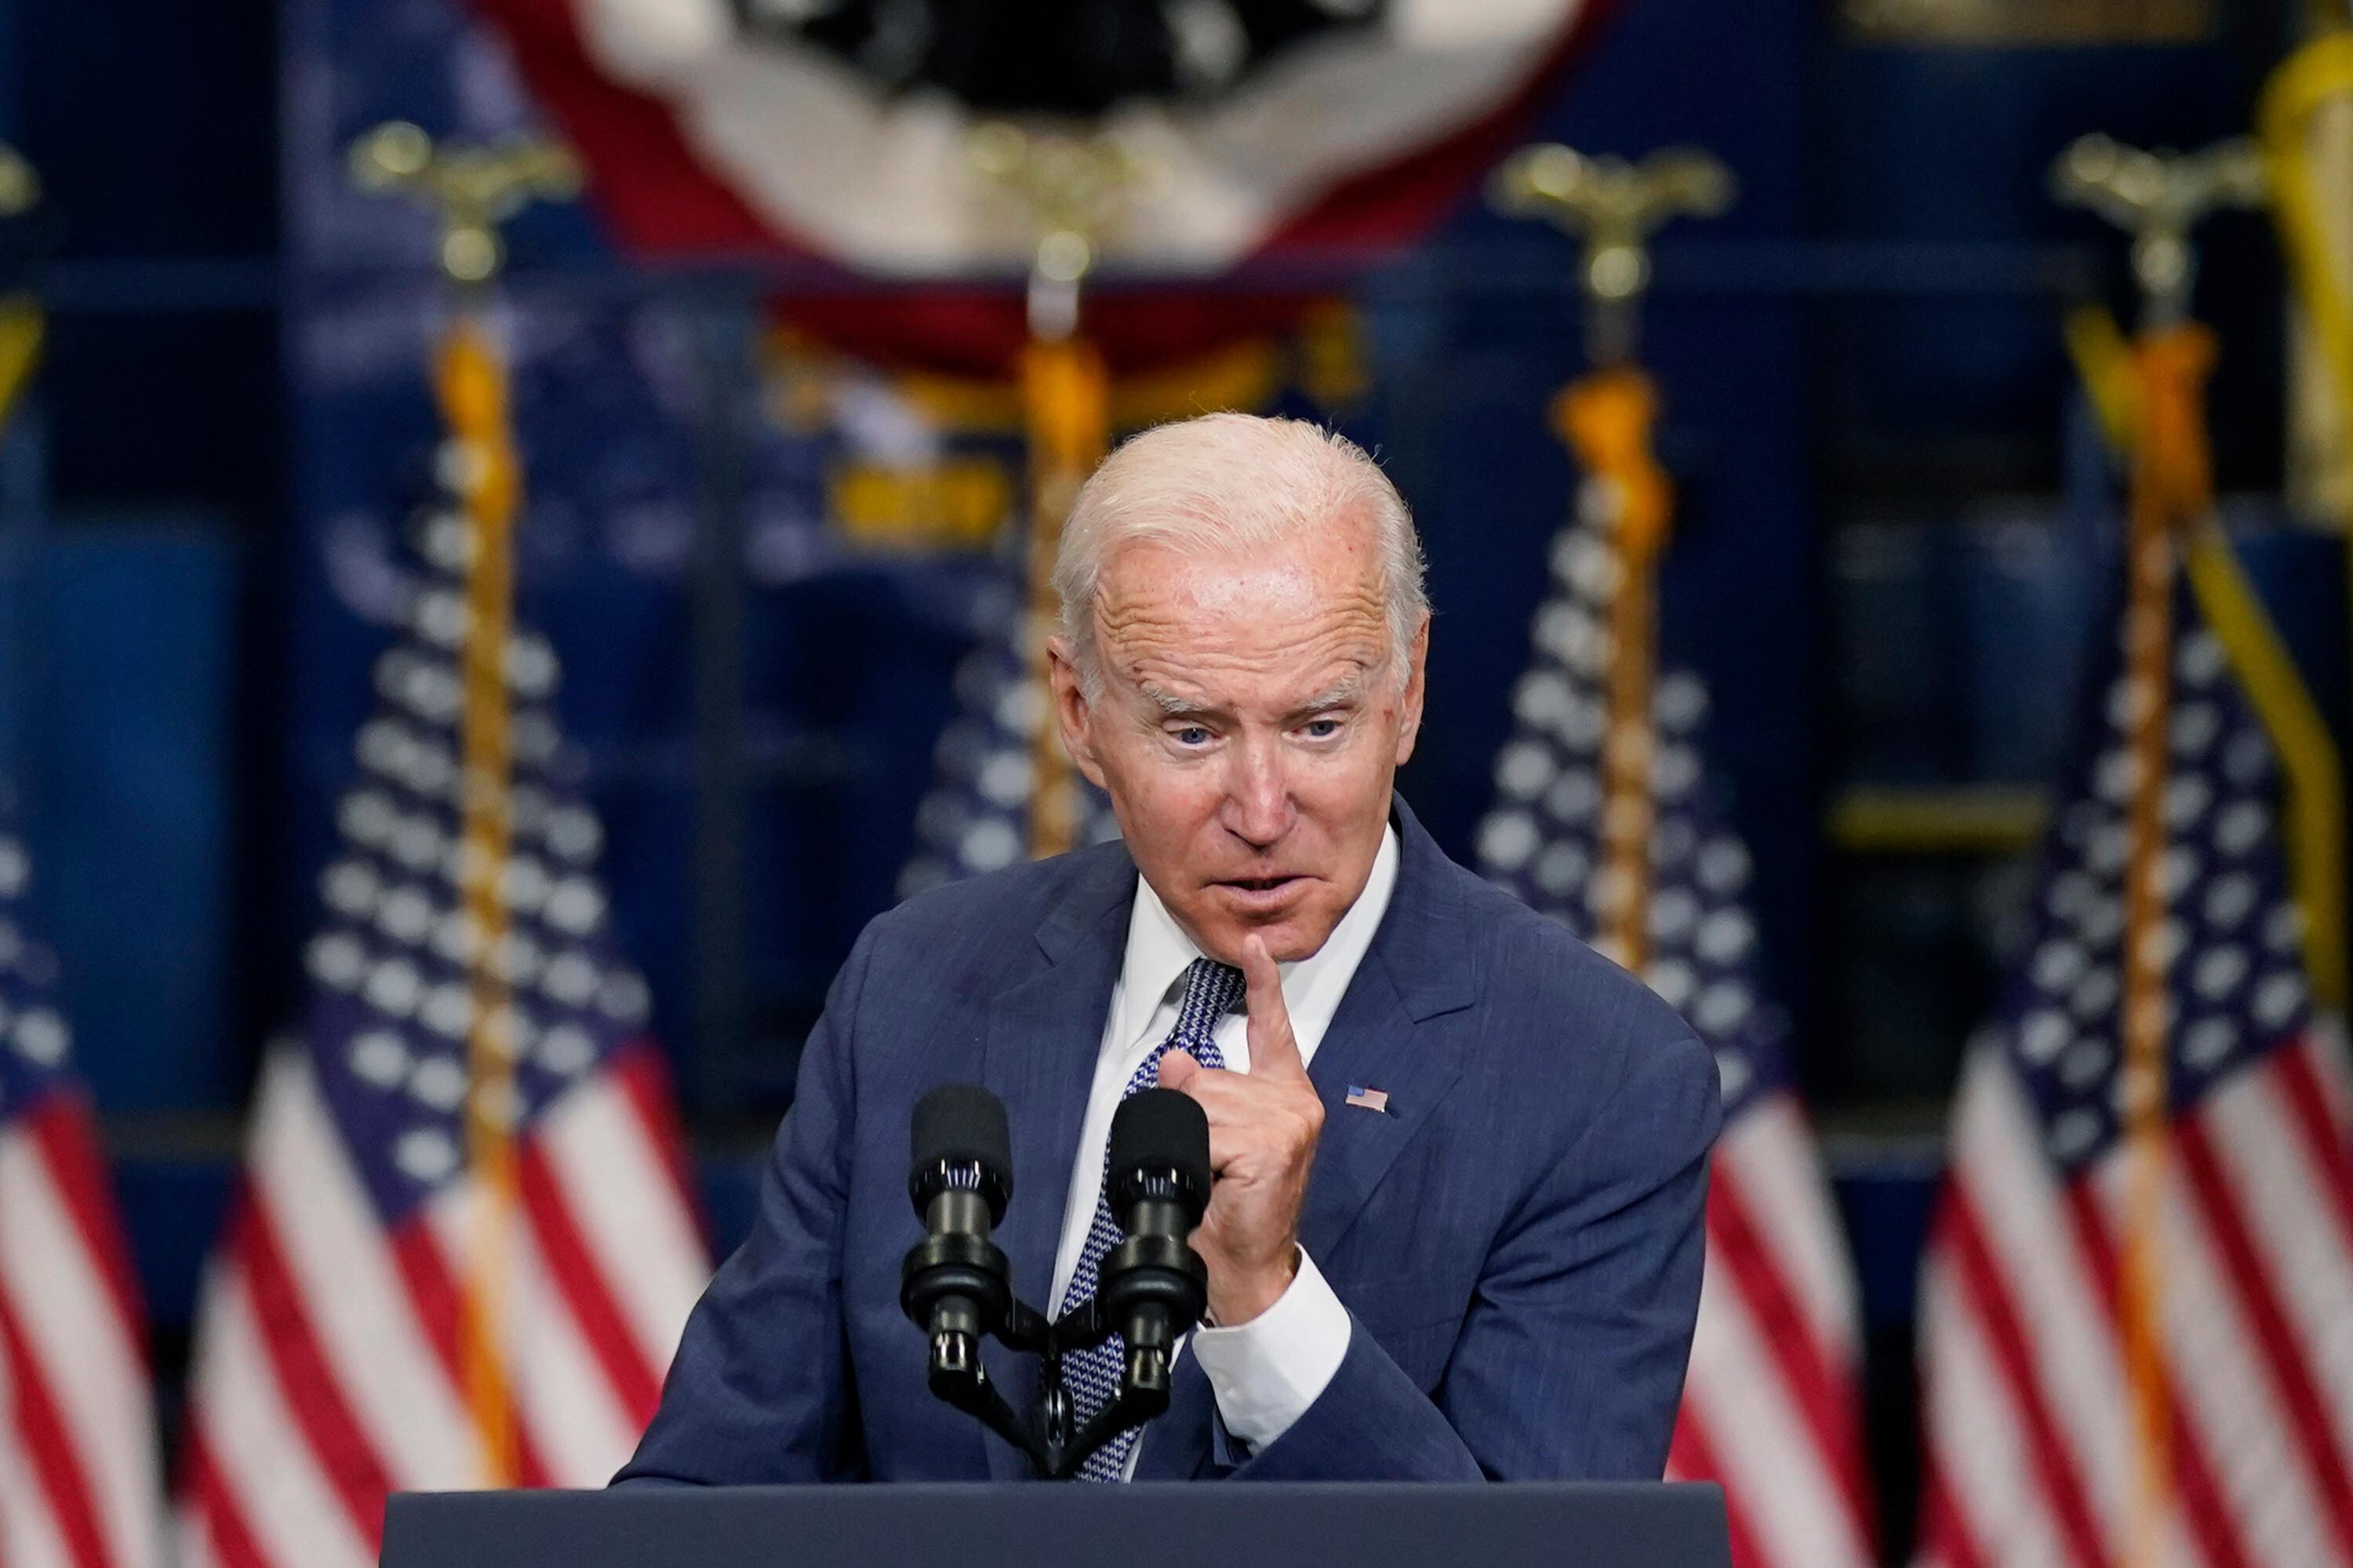 The search for creative solutions to the thorniest issues in Biden's agenda as deadline pressure kicks into high gear